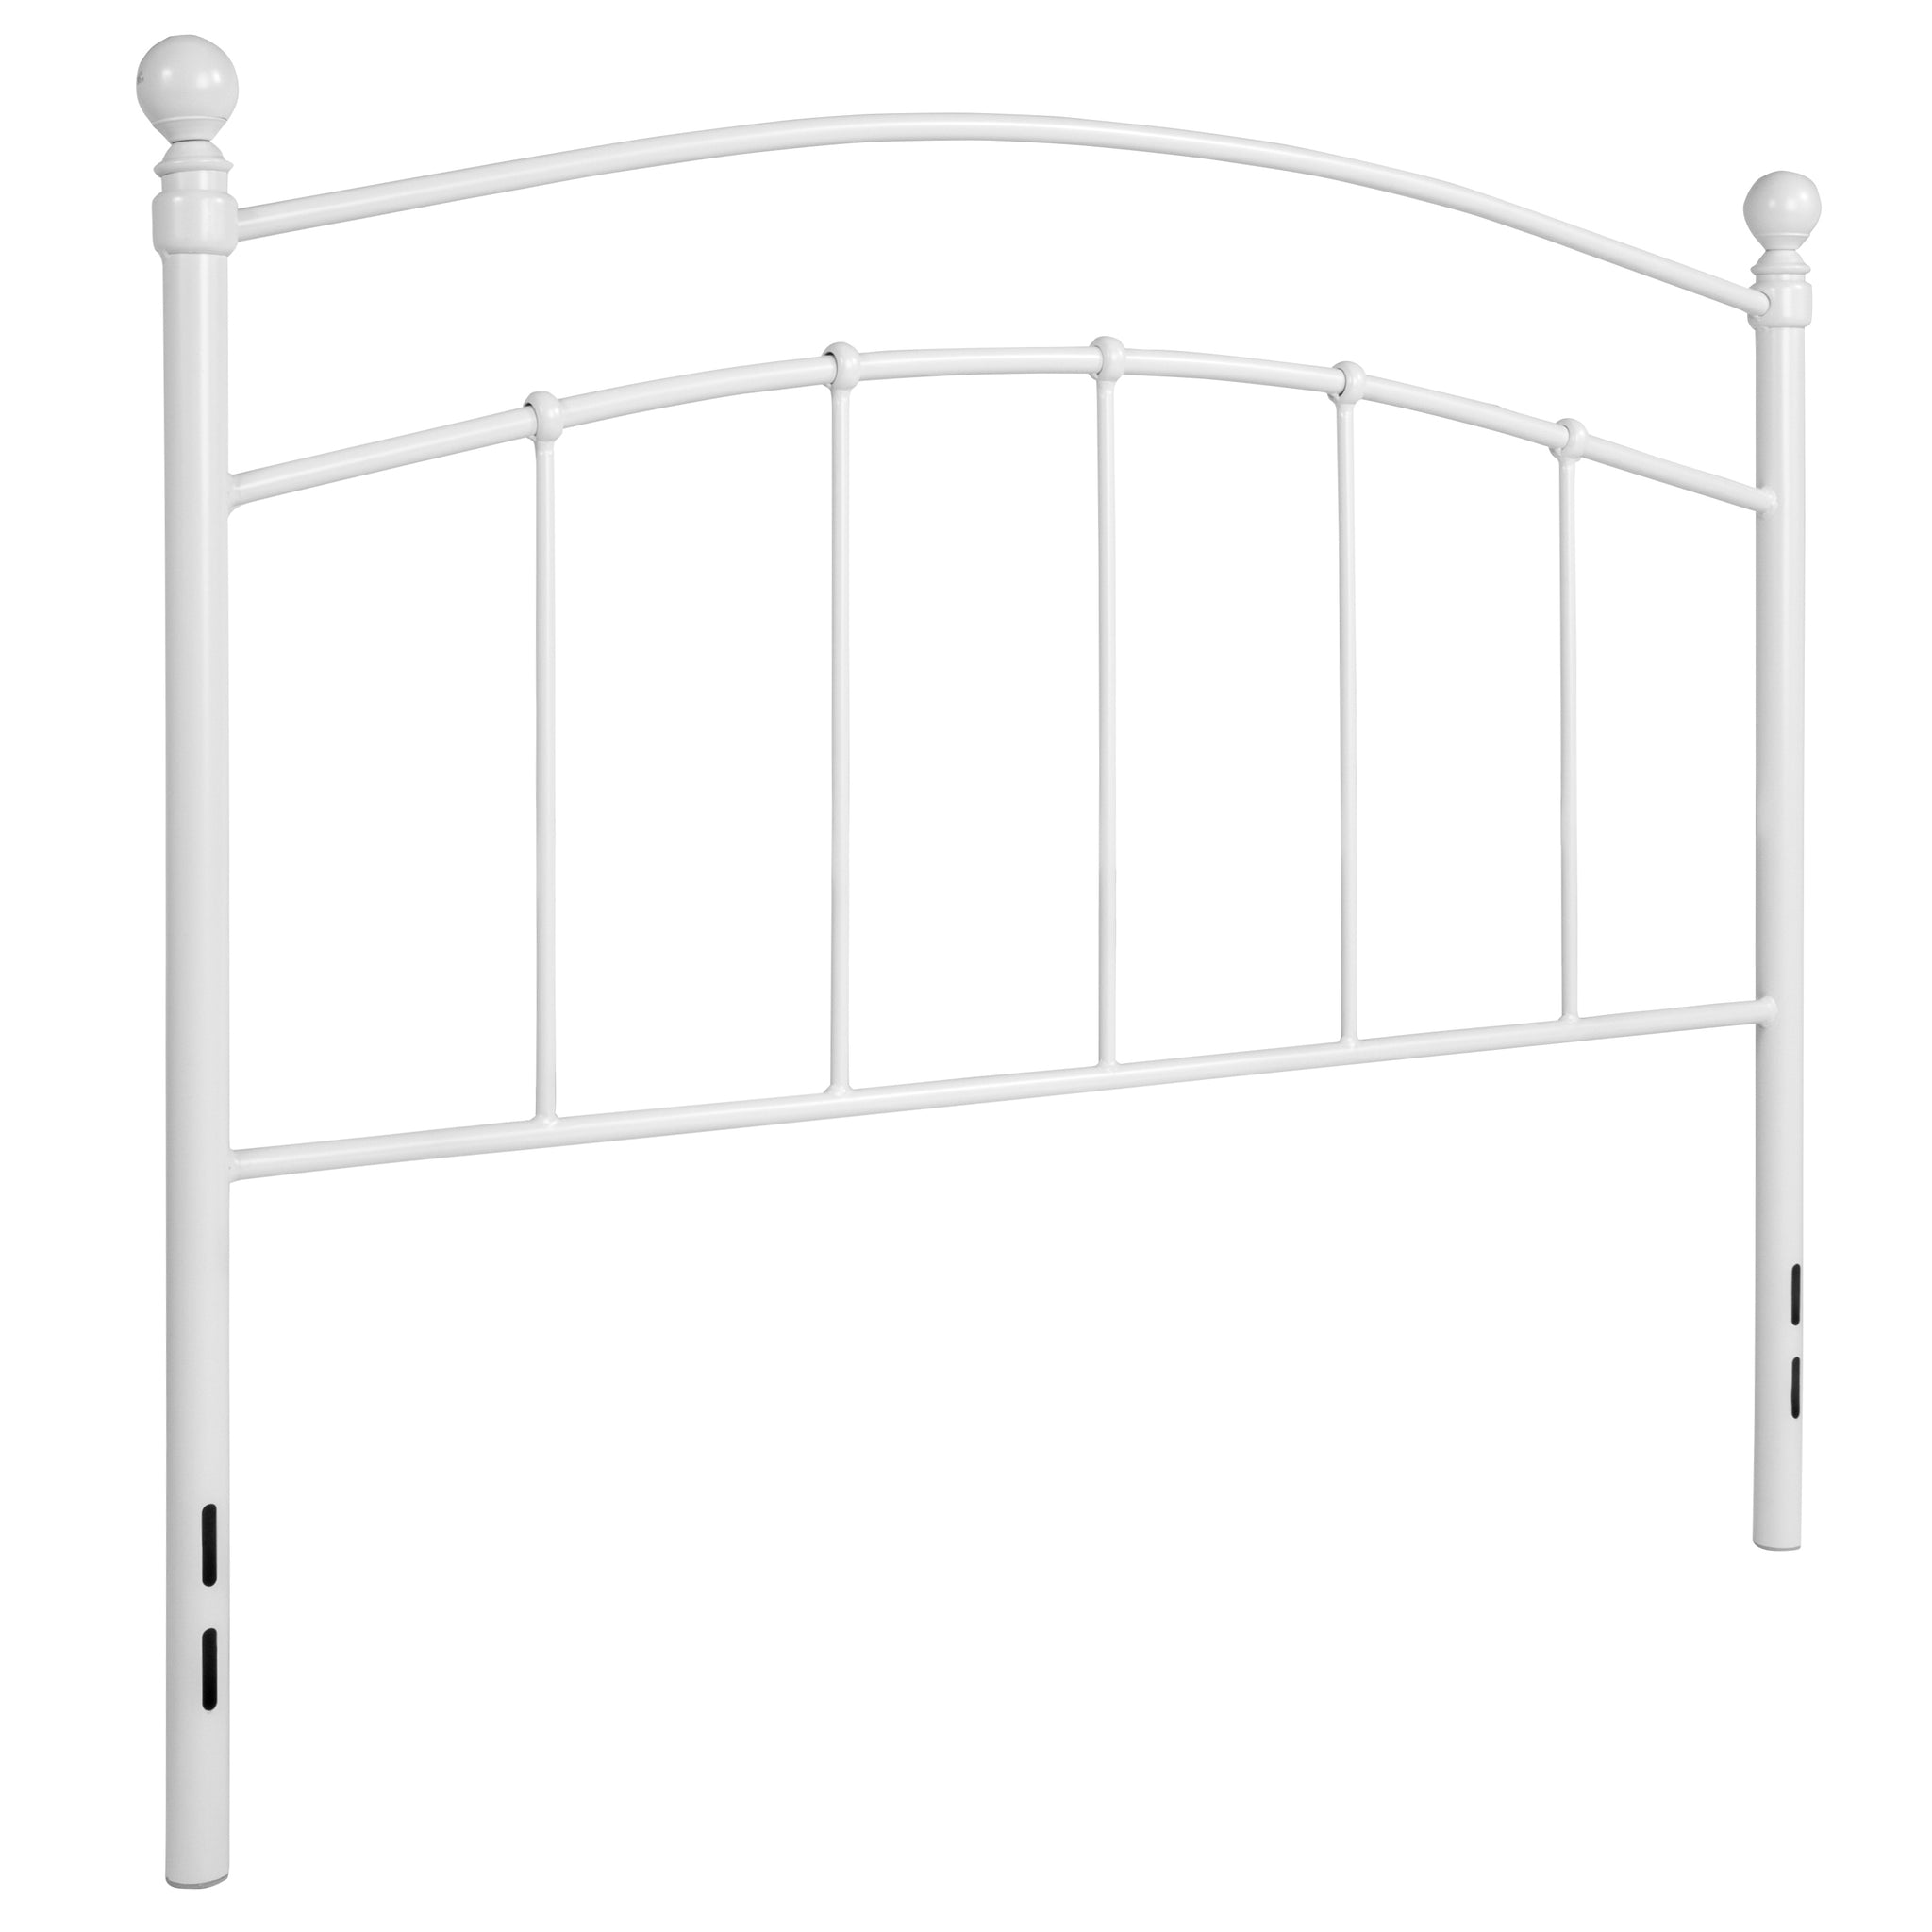 Woodstock Decorative White Metal Full Size Headboard